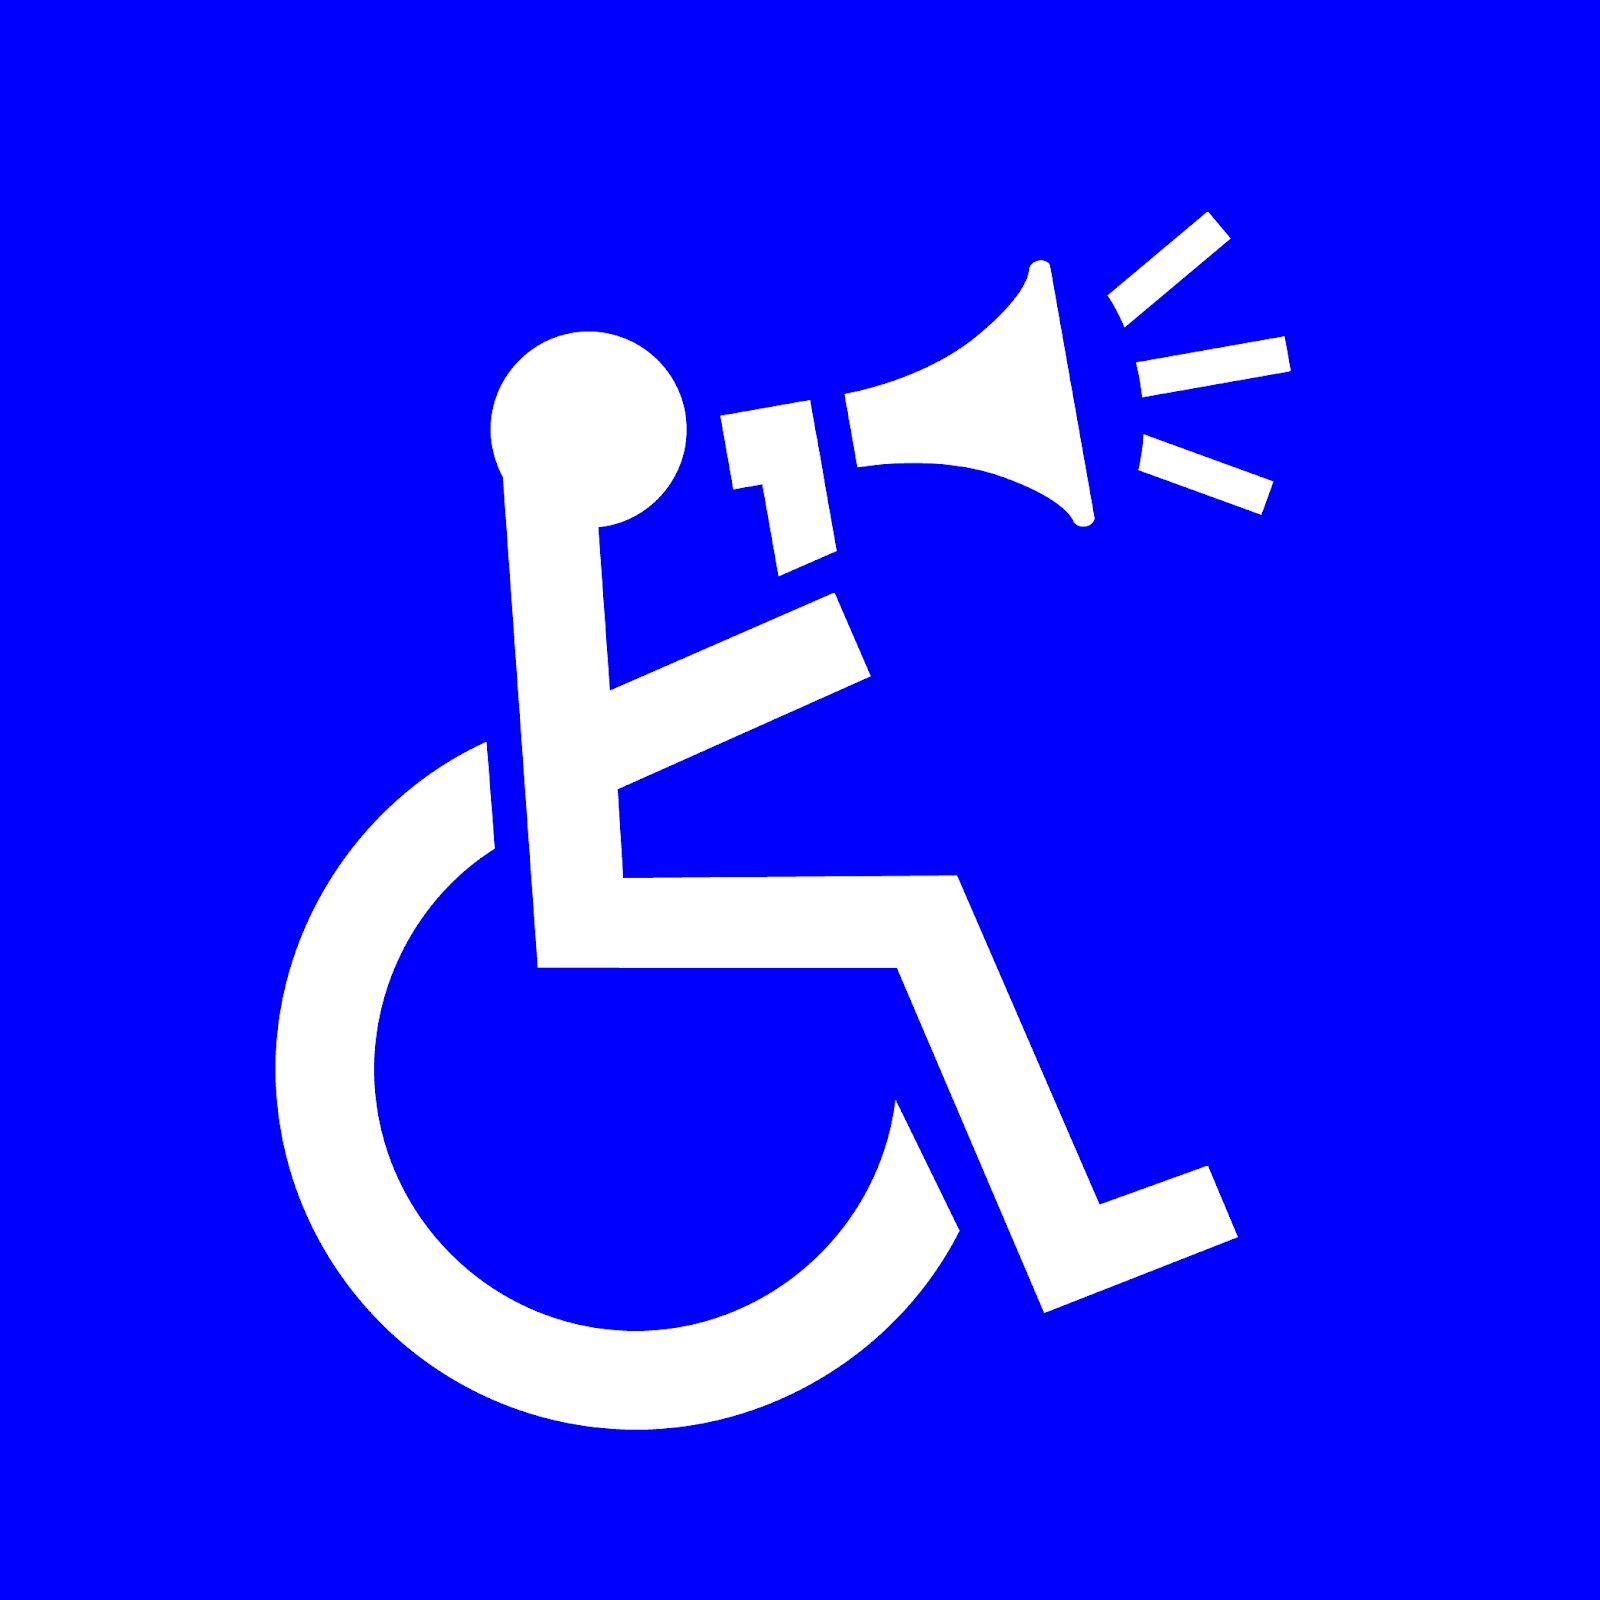 Profile photo: Wheelchair symbol with the person speaking into a megaphone.